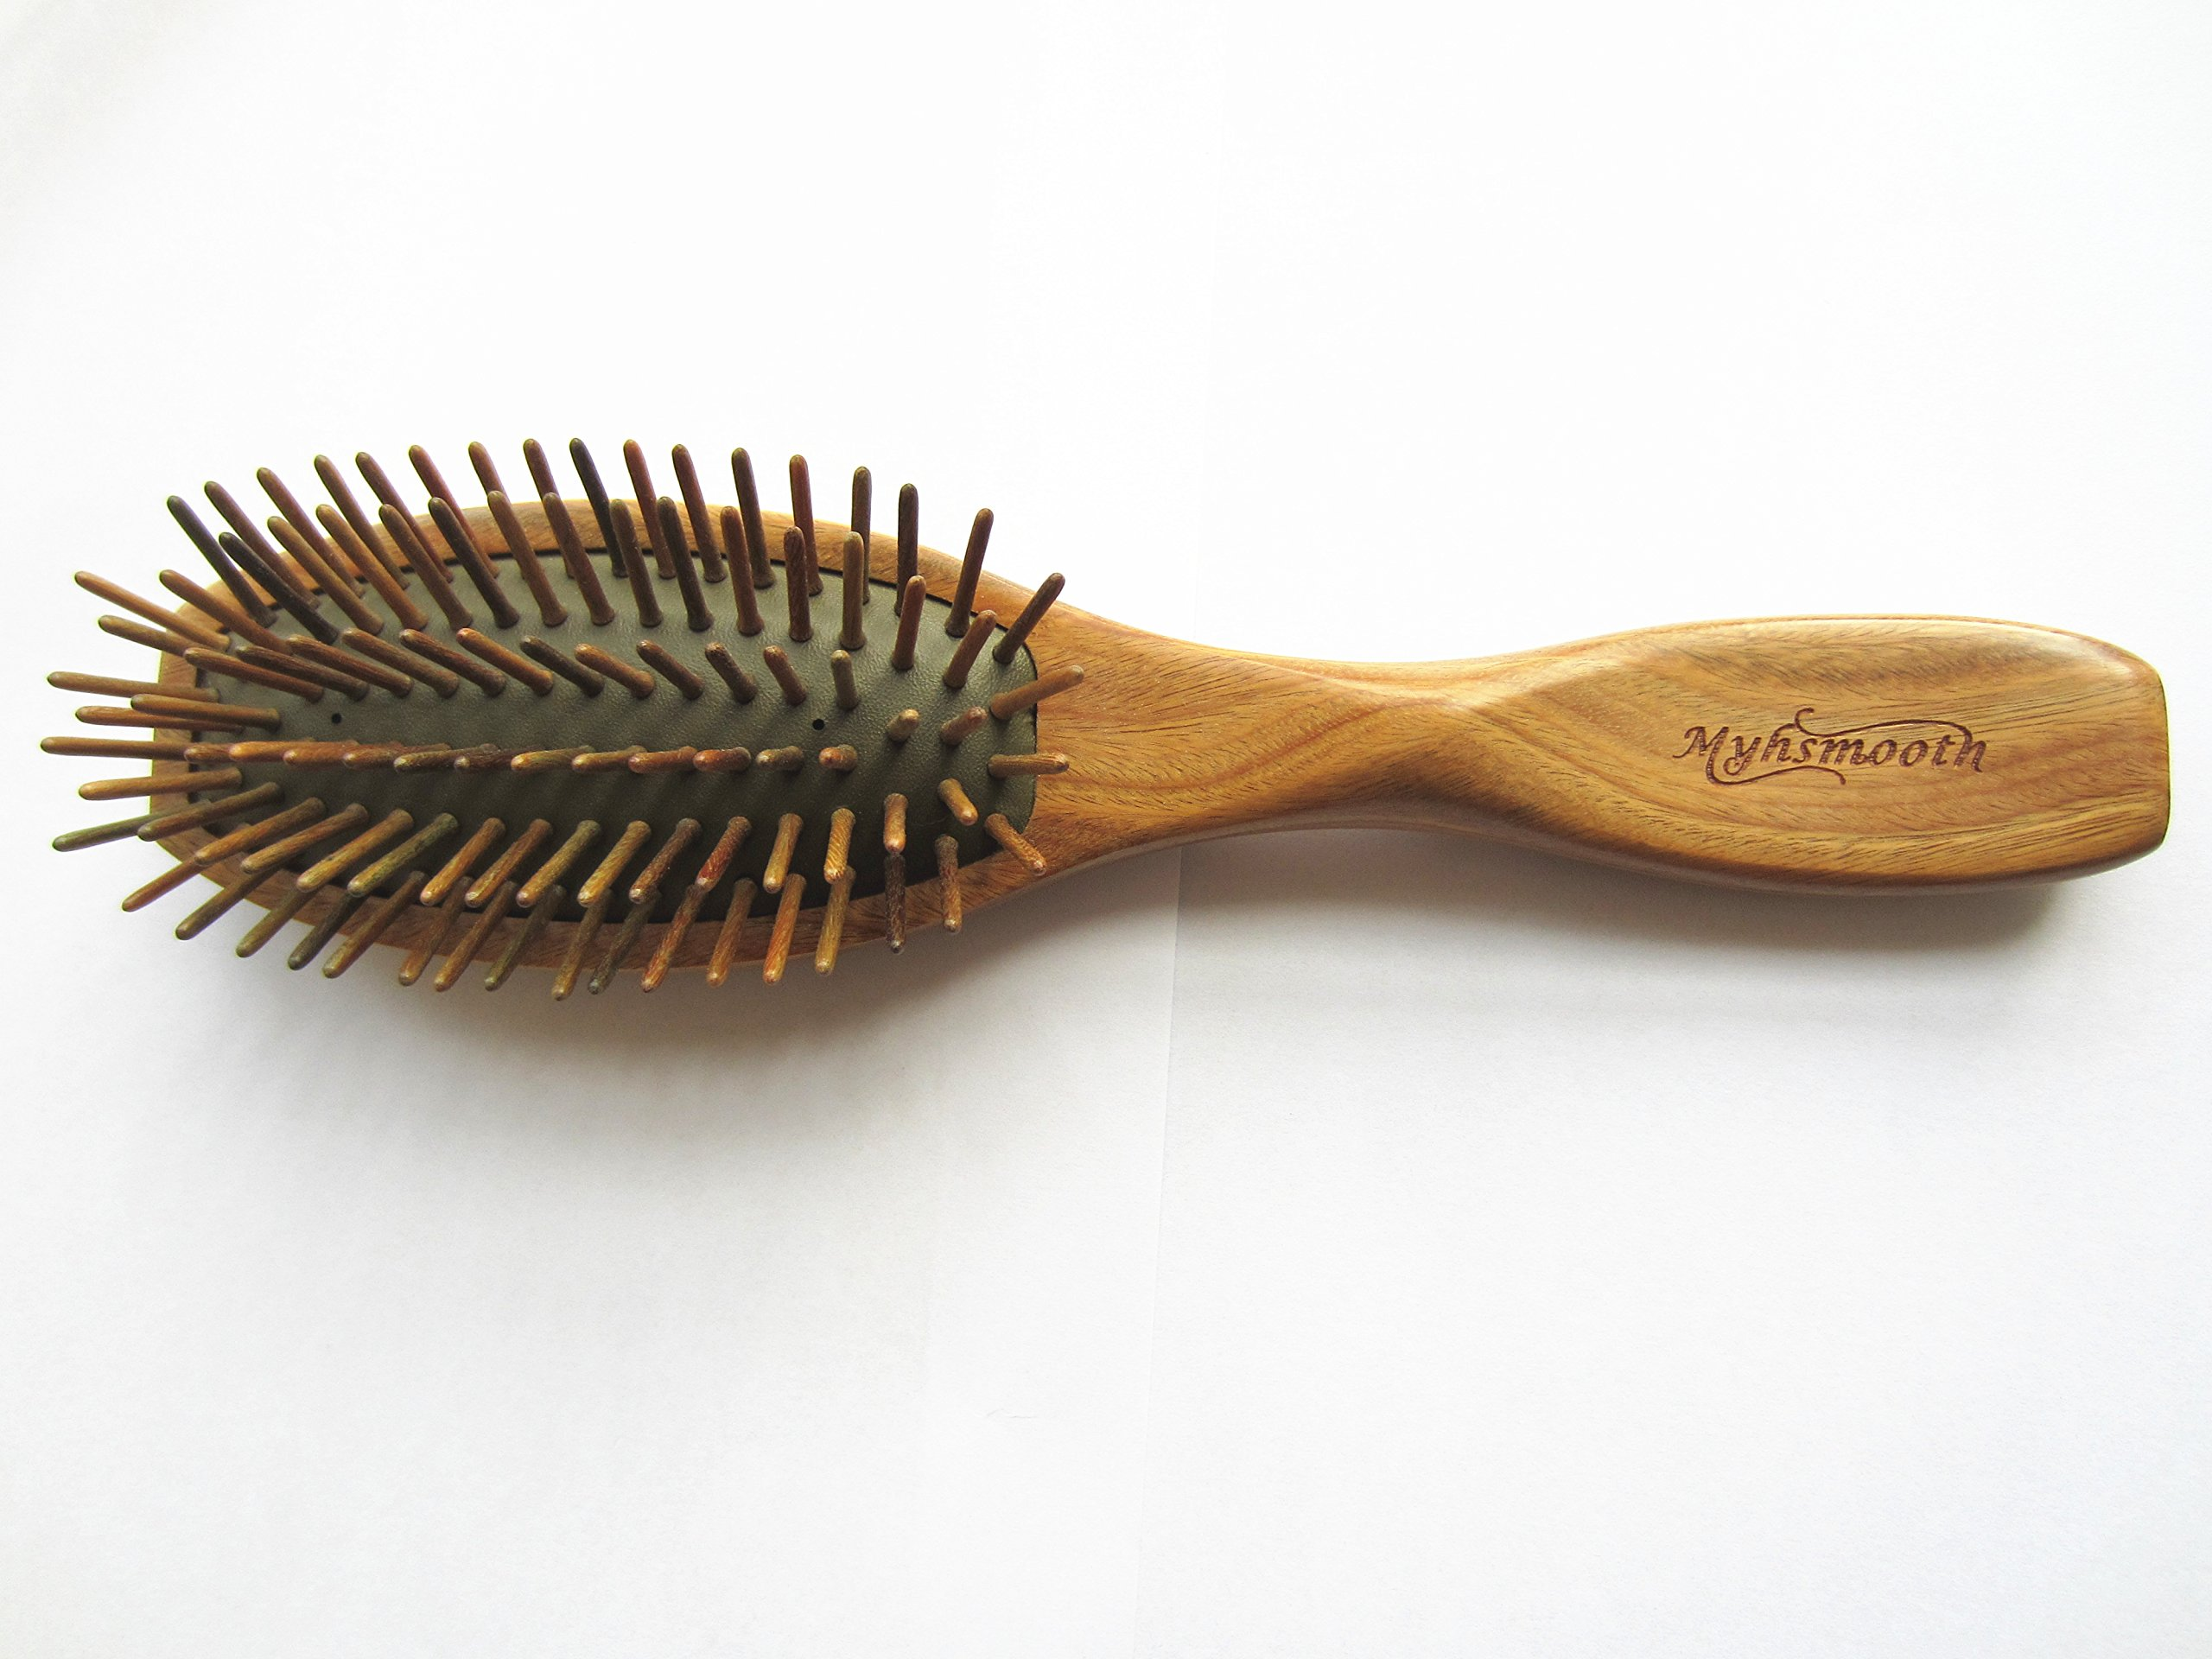 Myhsmooth G2s-am-gs Big Size Professional Handmade Natural Green Sandalwood No Static Hair Brush Air Bag Massage Comb Hair Comb with Handle with Aromatic Scent for Gift